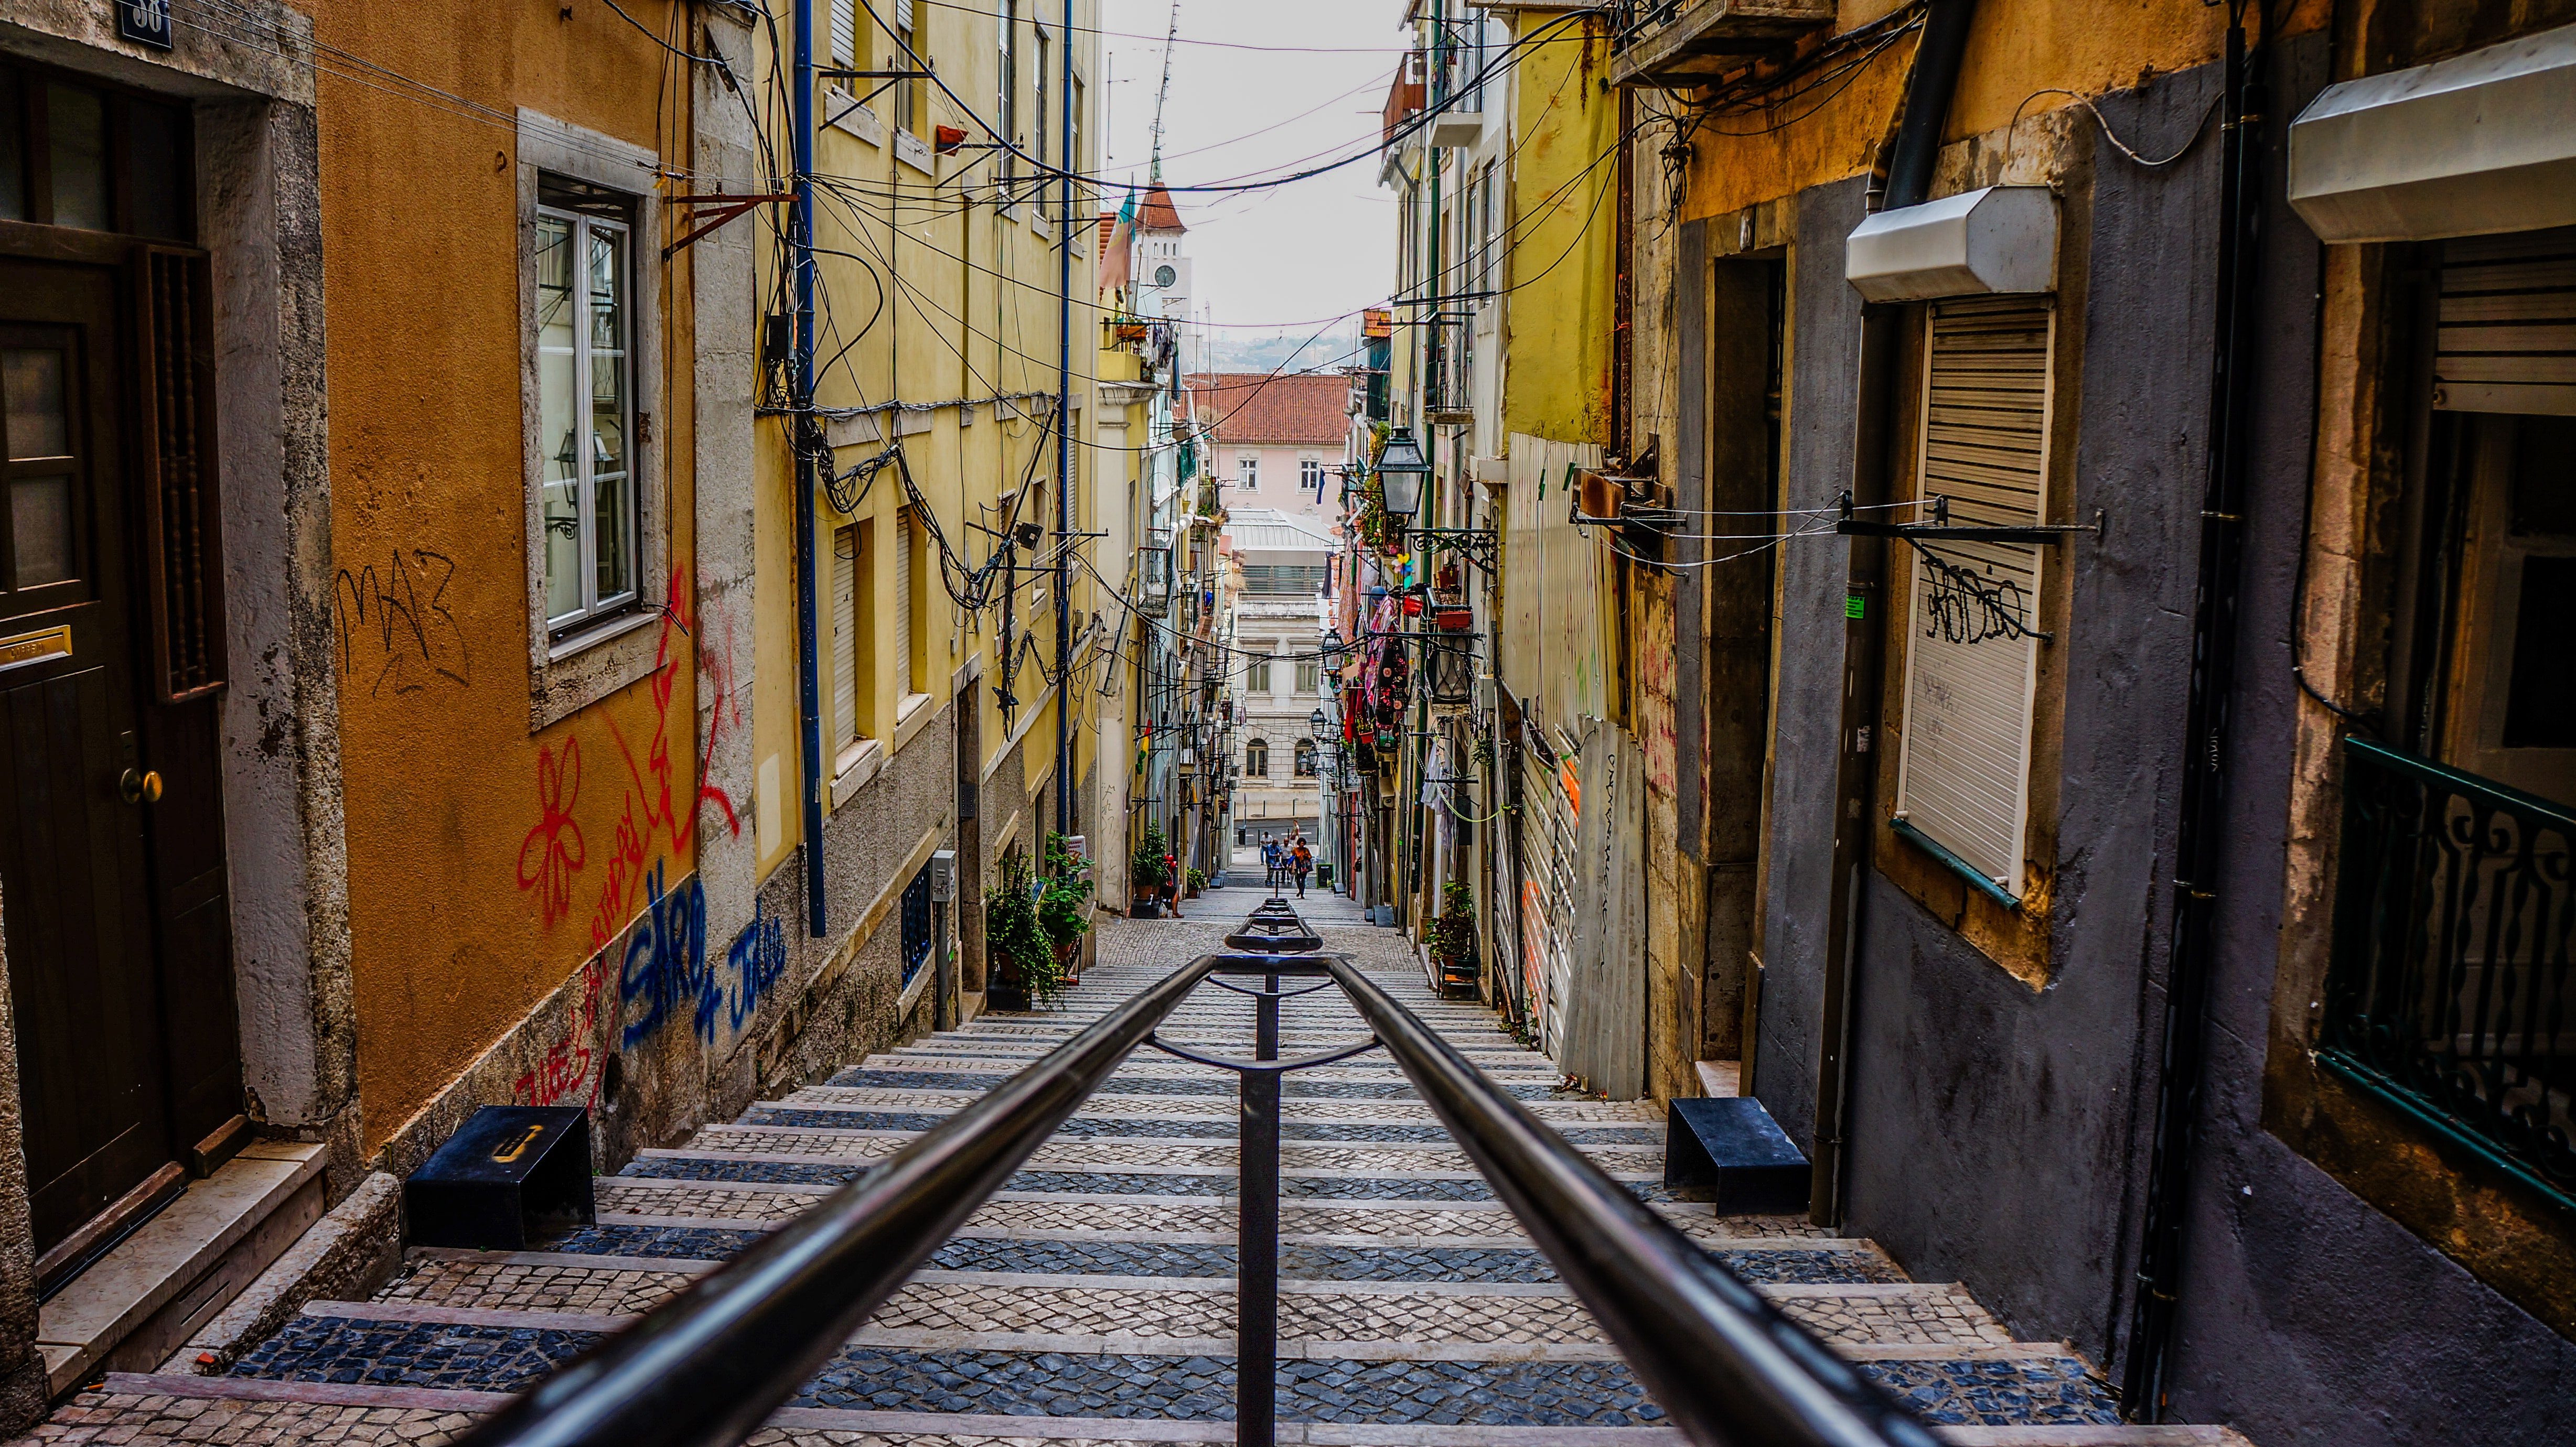 A staircase leading down an alley in Lisbon